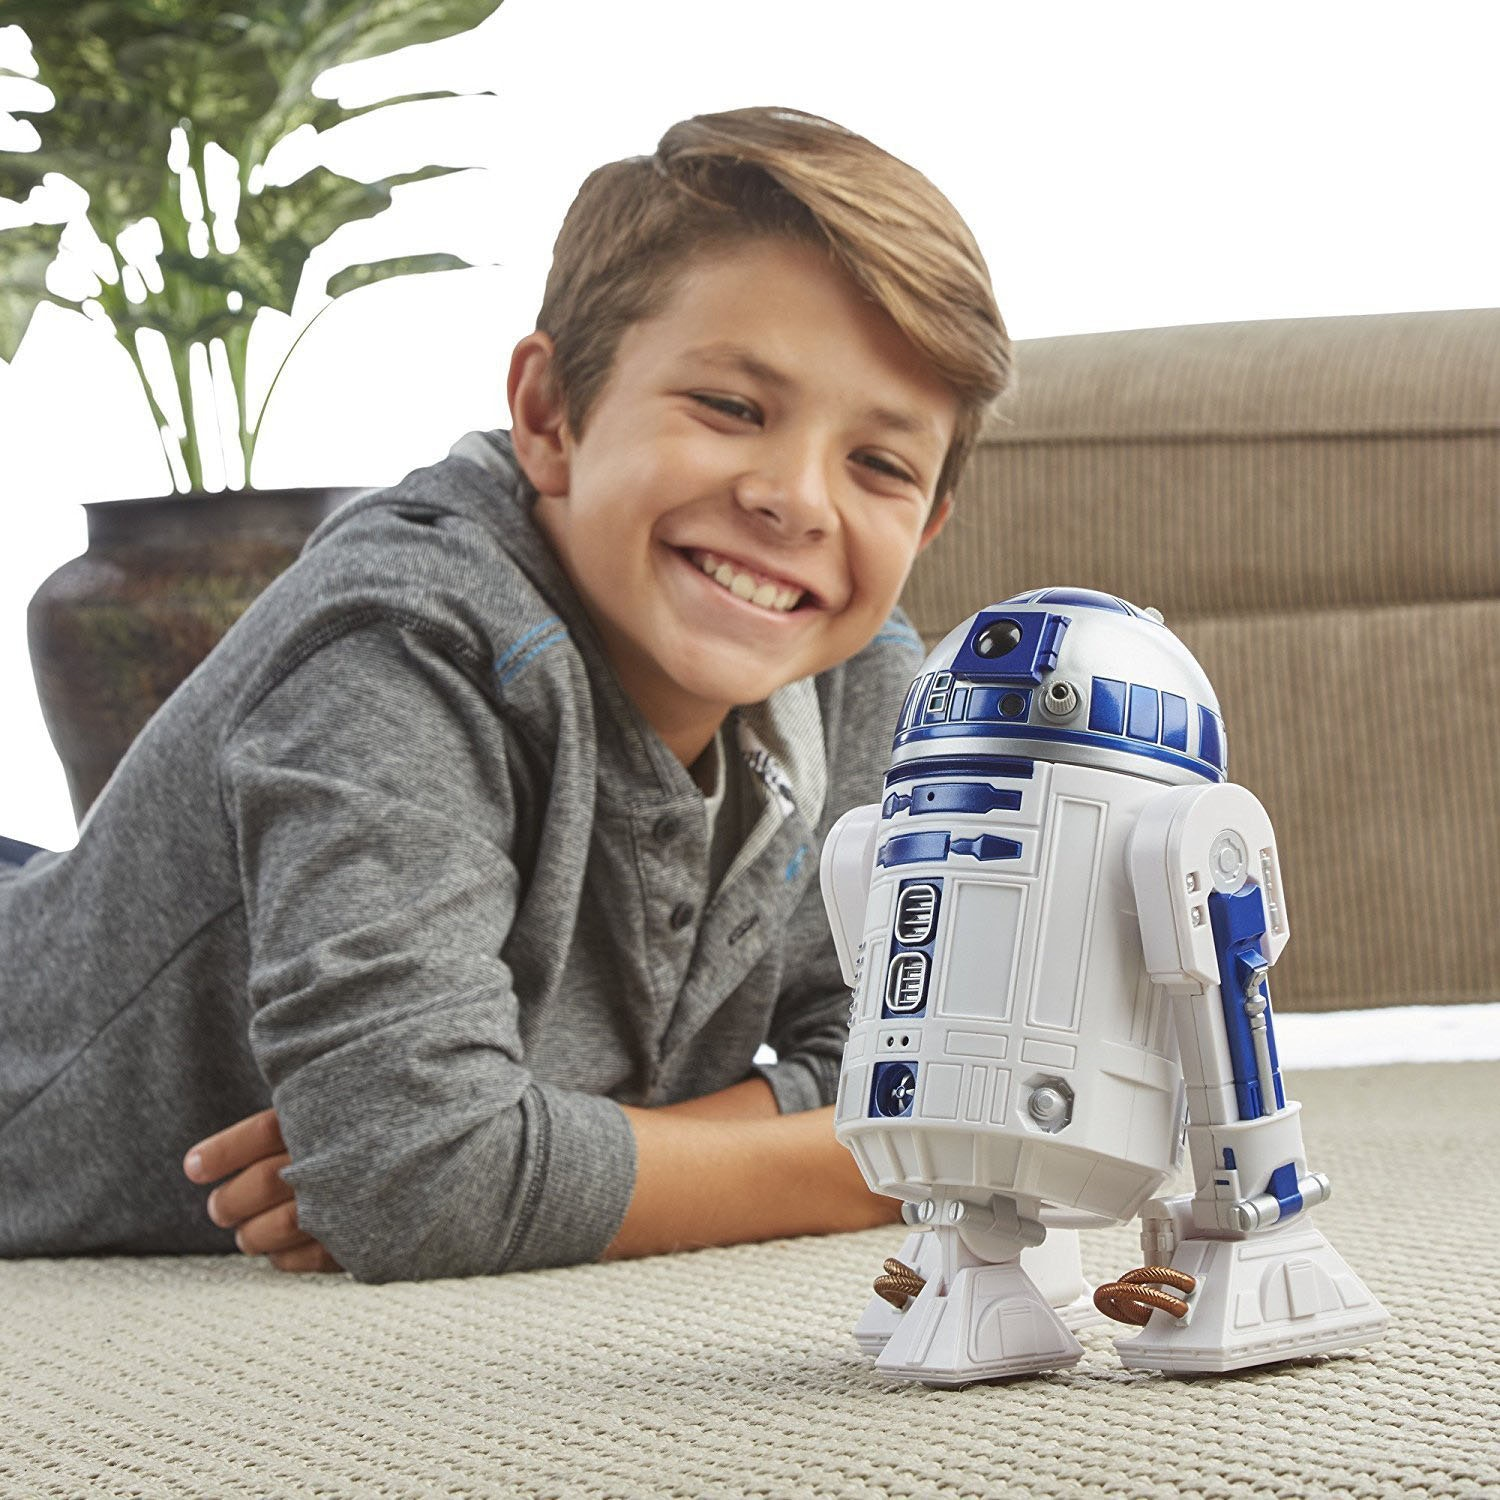 Your very own Bluetooth-enabled R2-D2